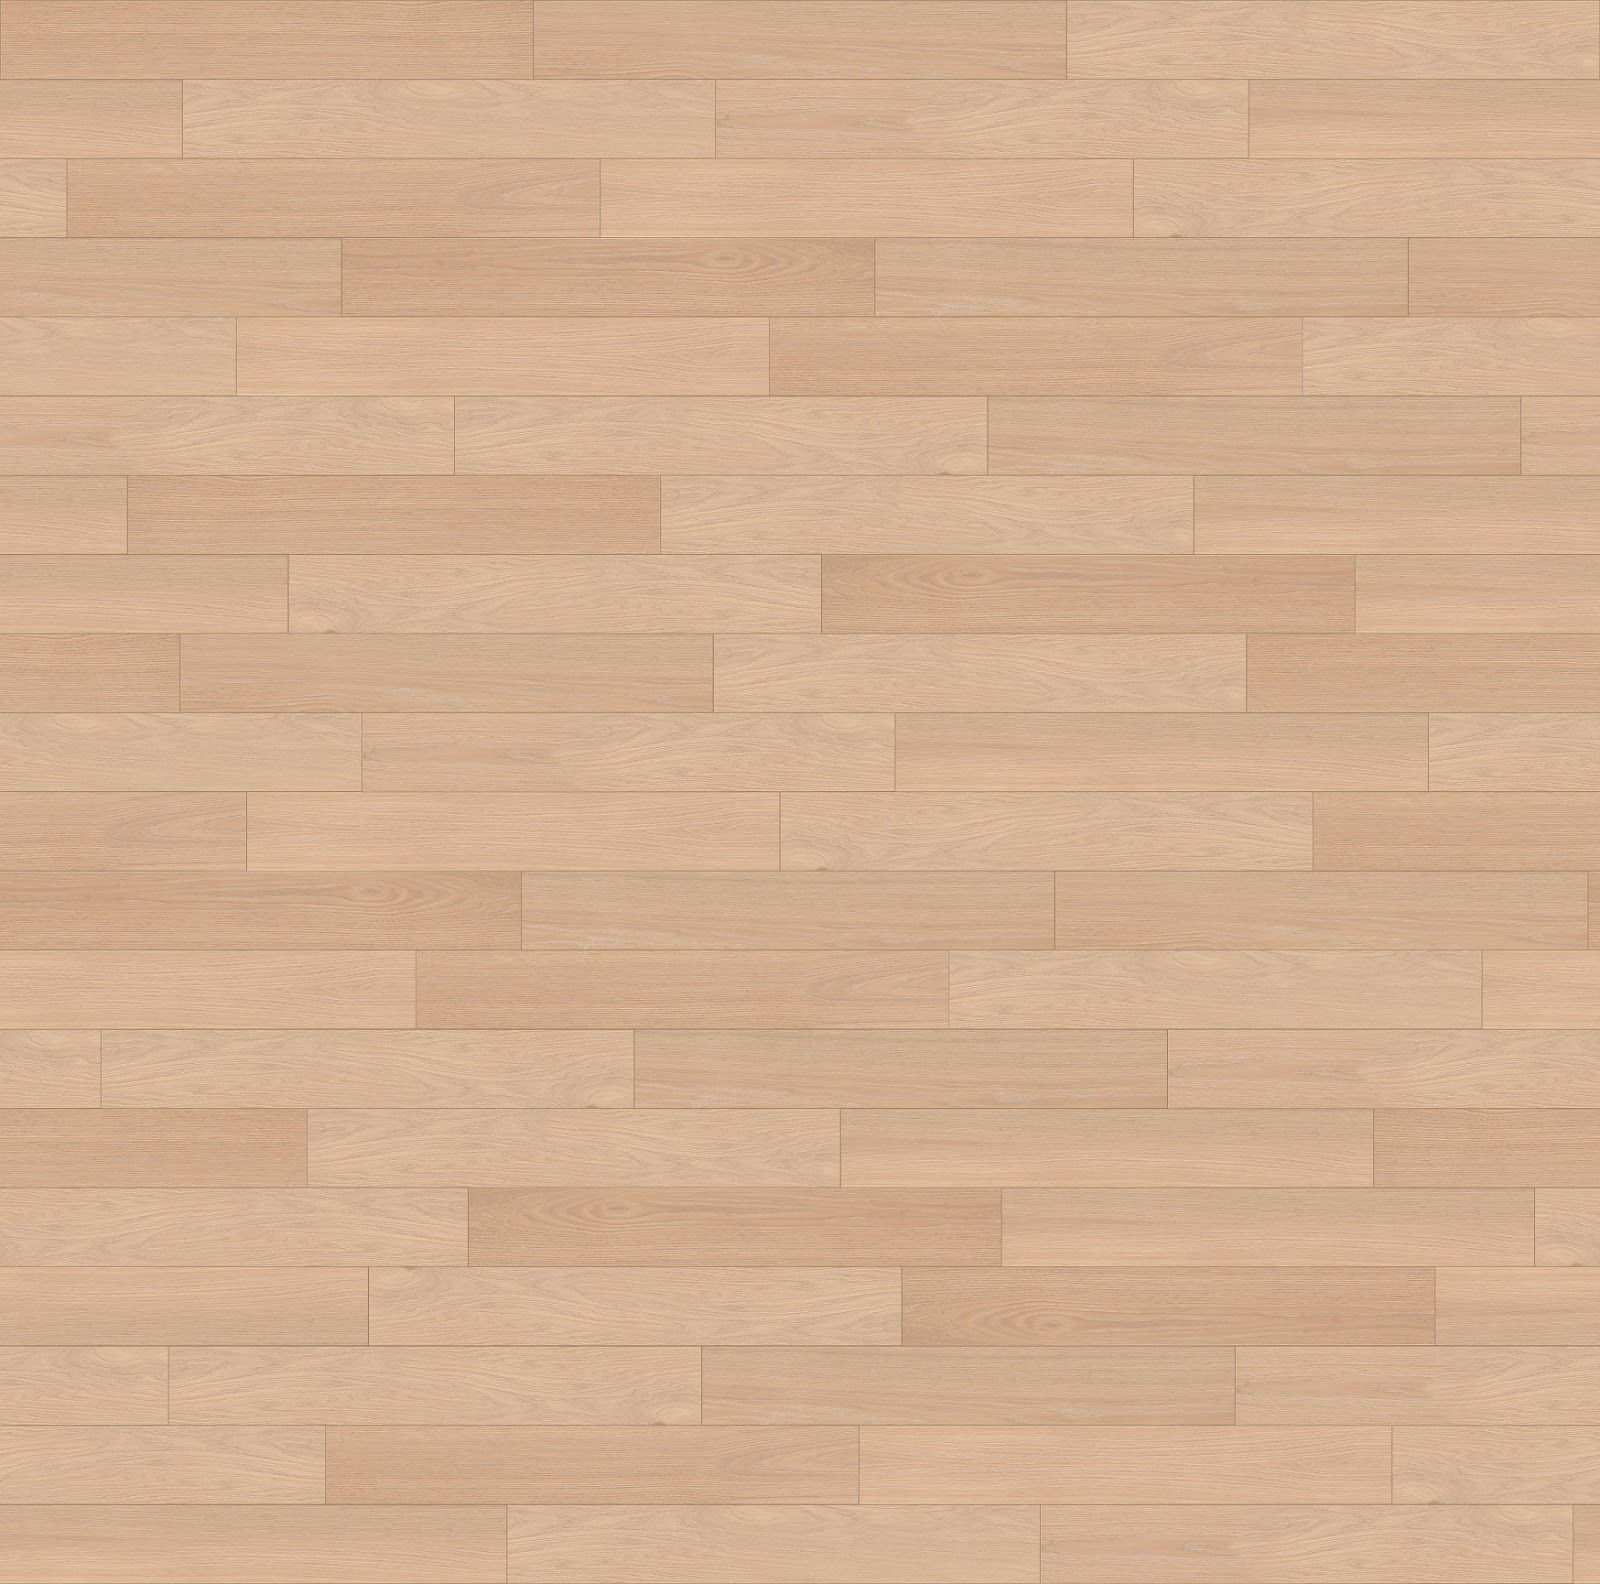 Basketball Floor Texture: High Quality Texture Seamless And Sketchup Tutorial